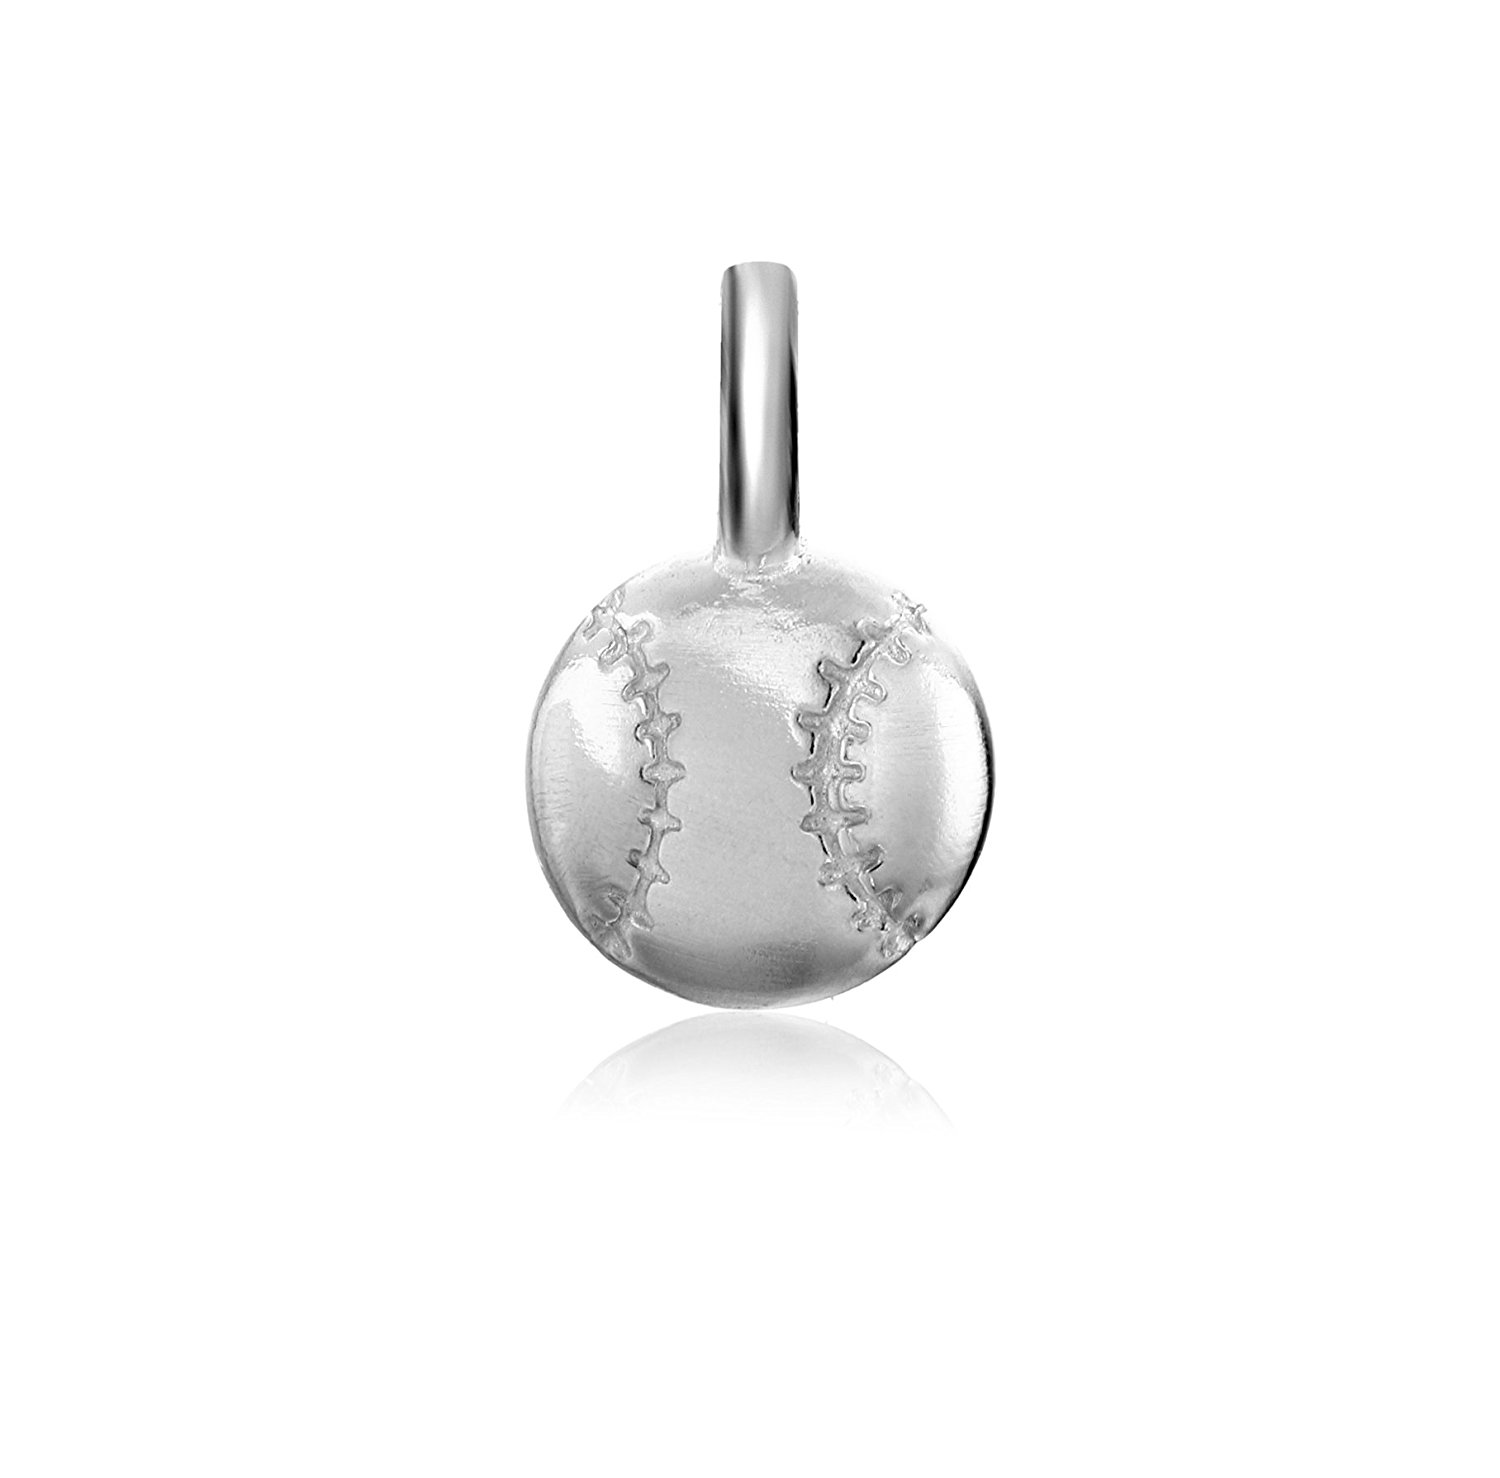 alex woo amazon baseball charm